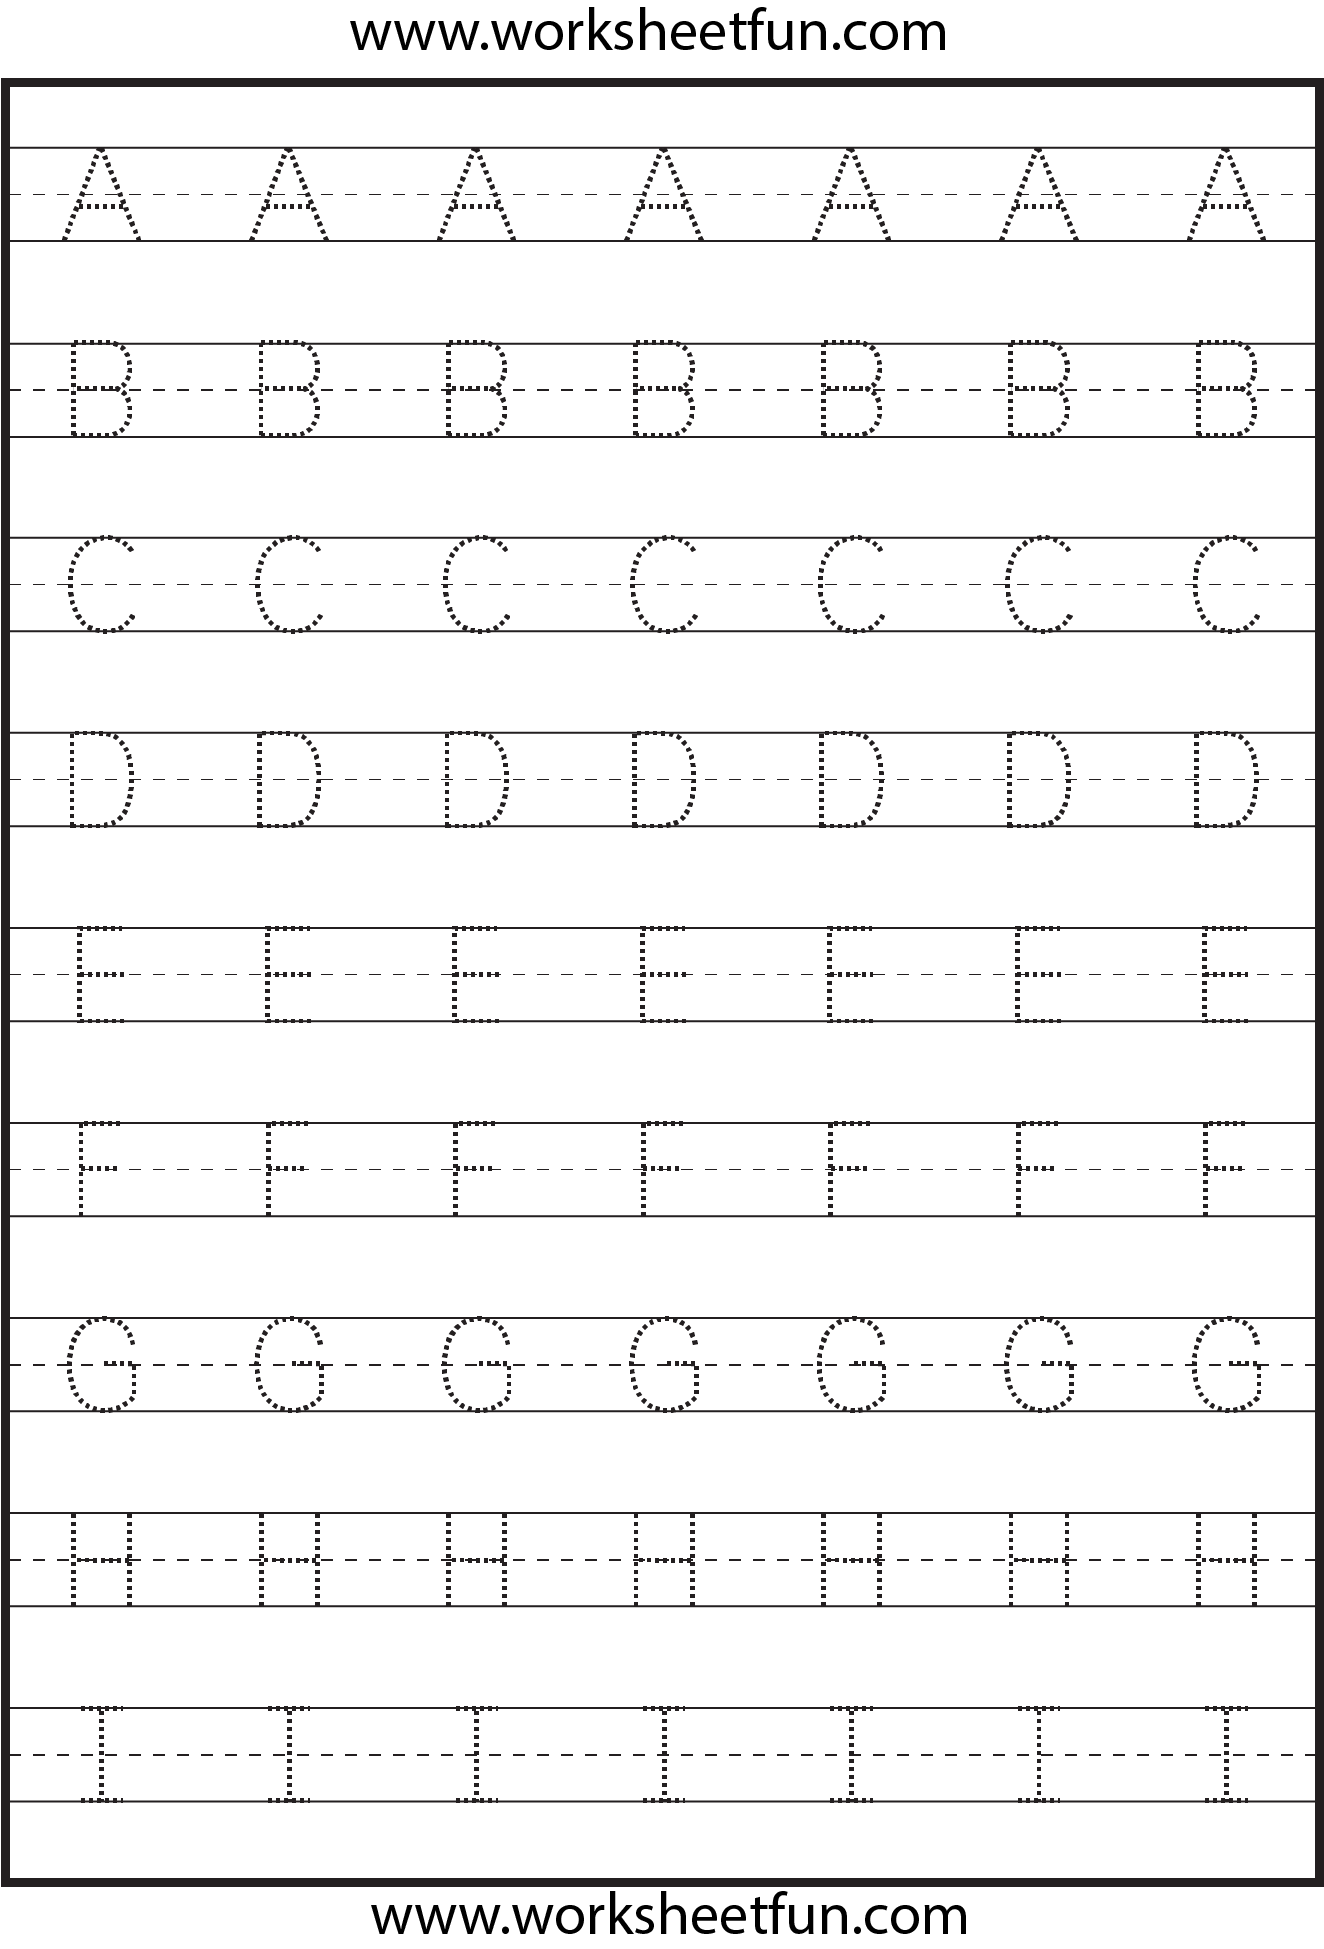 tracing uppercase letters capital letters 3 worksheets free printable worksheets. Black Bedroom Furniture Sets. Home Design Ideas